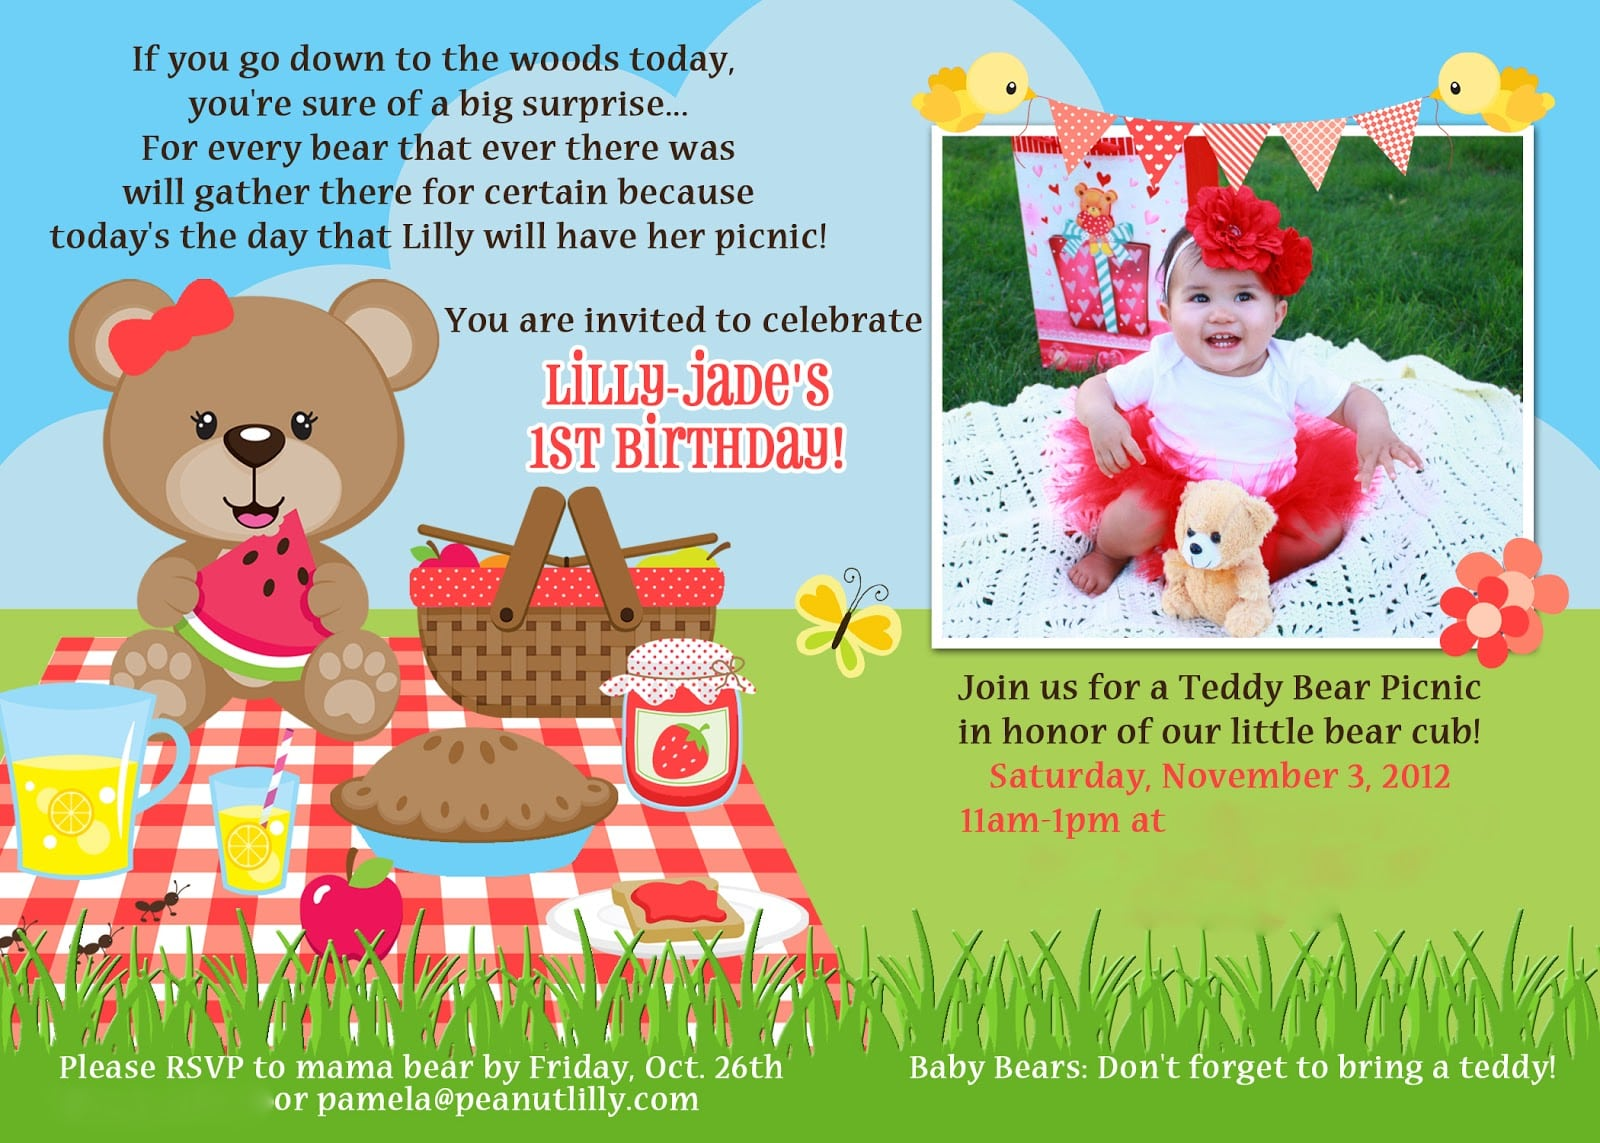 Teddy Bear Picnic Party Invites Macdonald39s Playland Lilly39s 1st